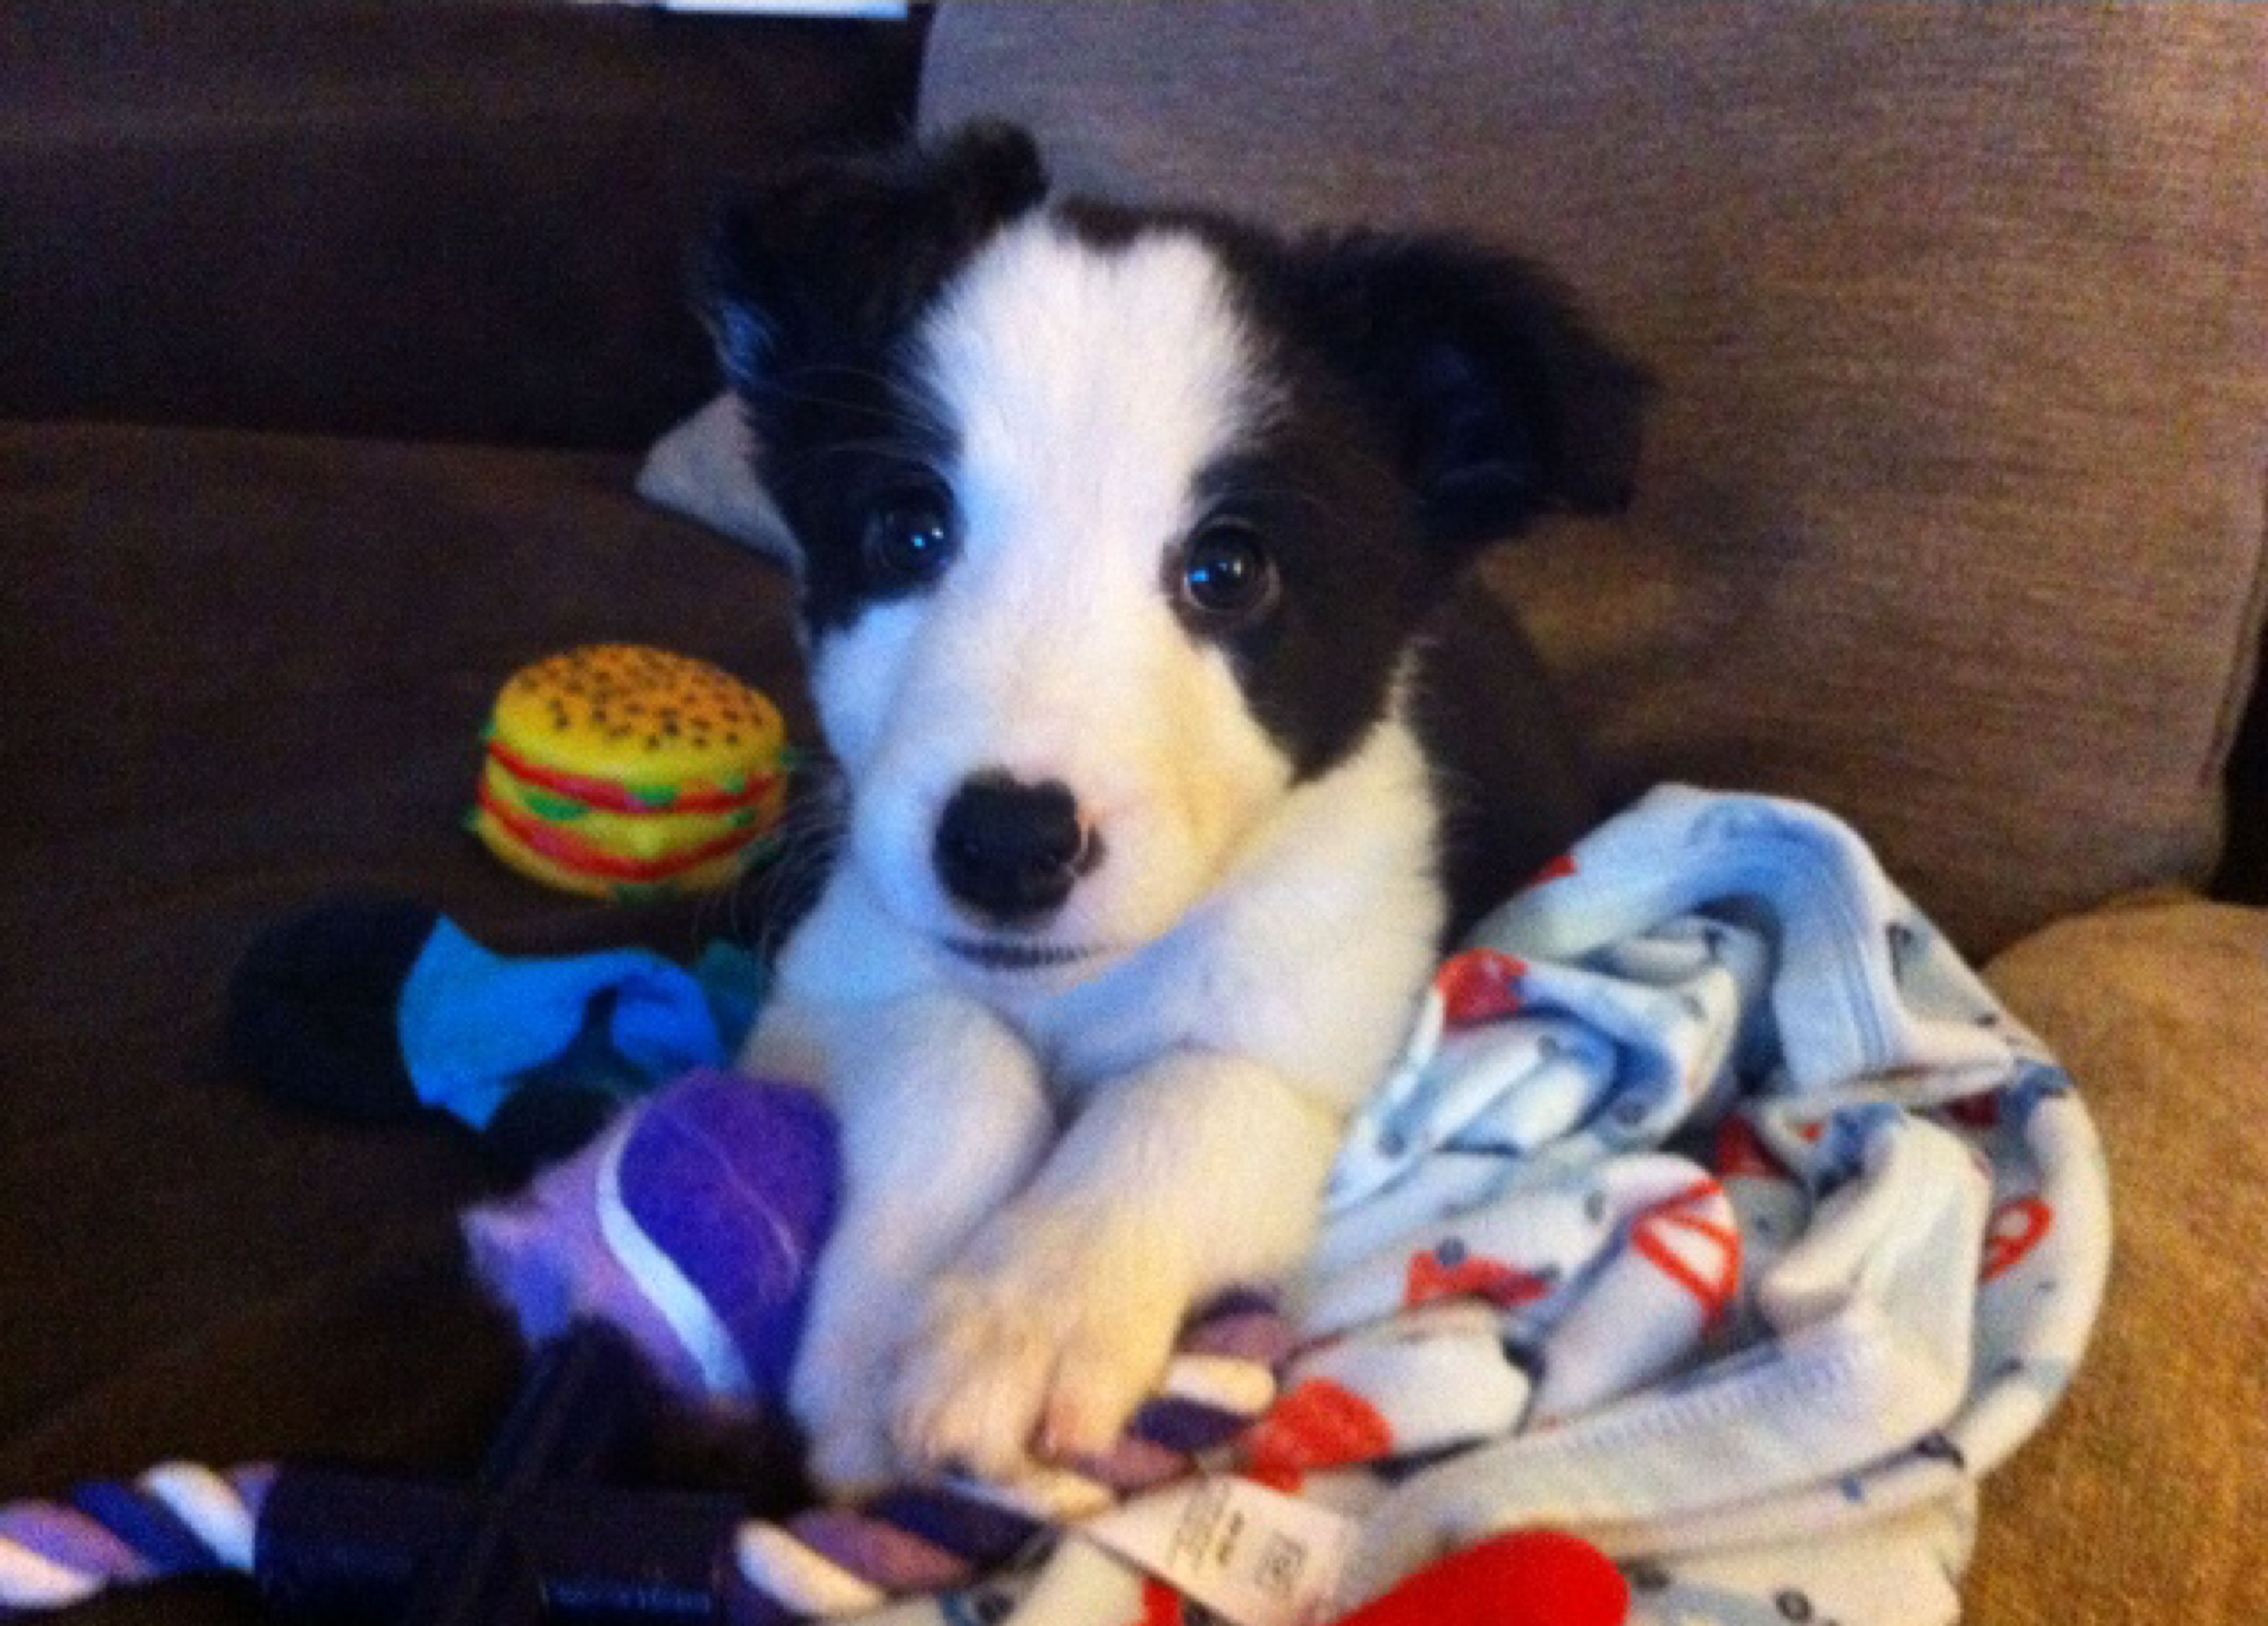 Pin by yasmine morris on border collie puppy 8 weeks so cute border collie puppies border collies border collie pups border collie nvjuhfo Choice Image